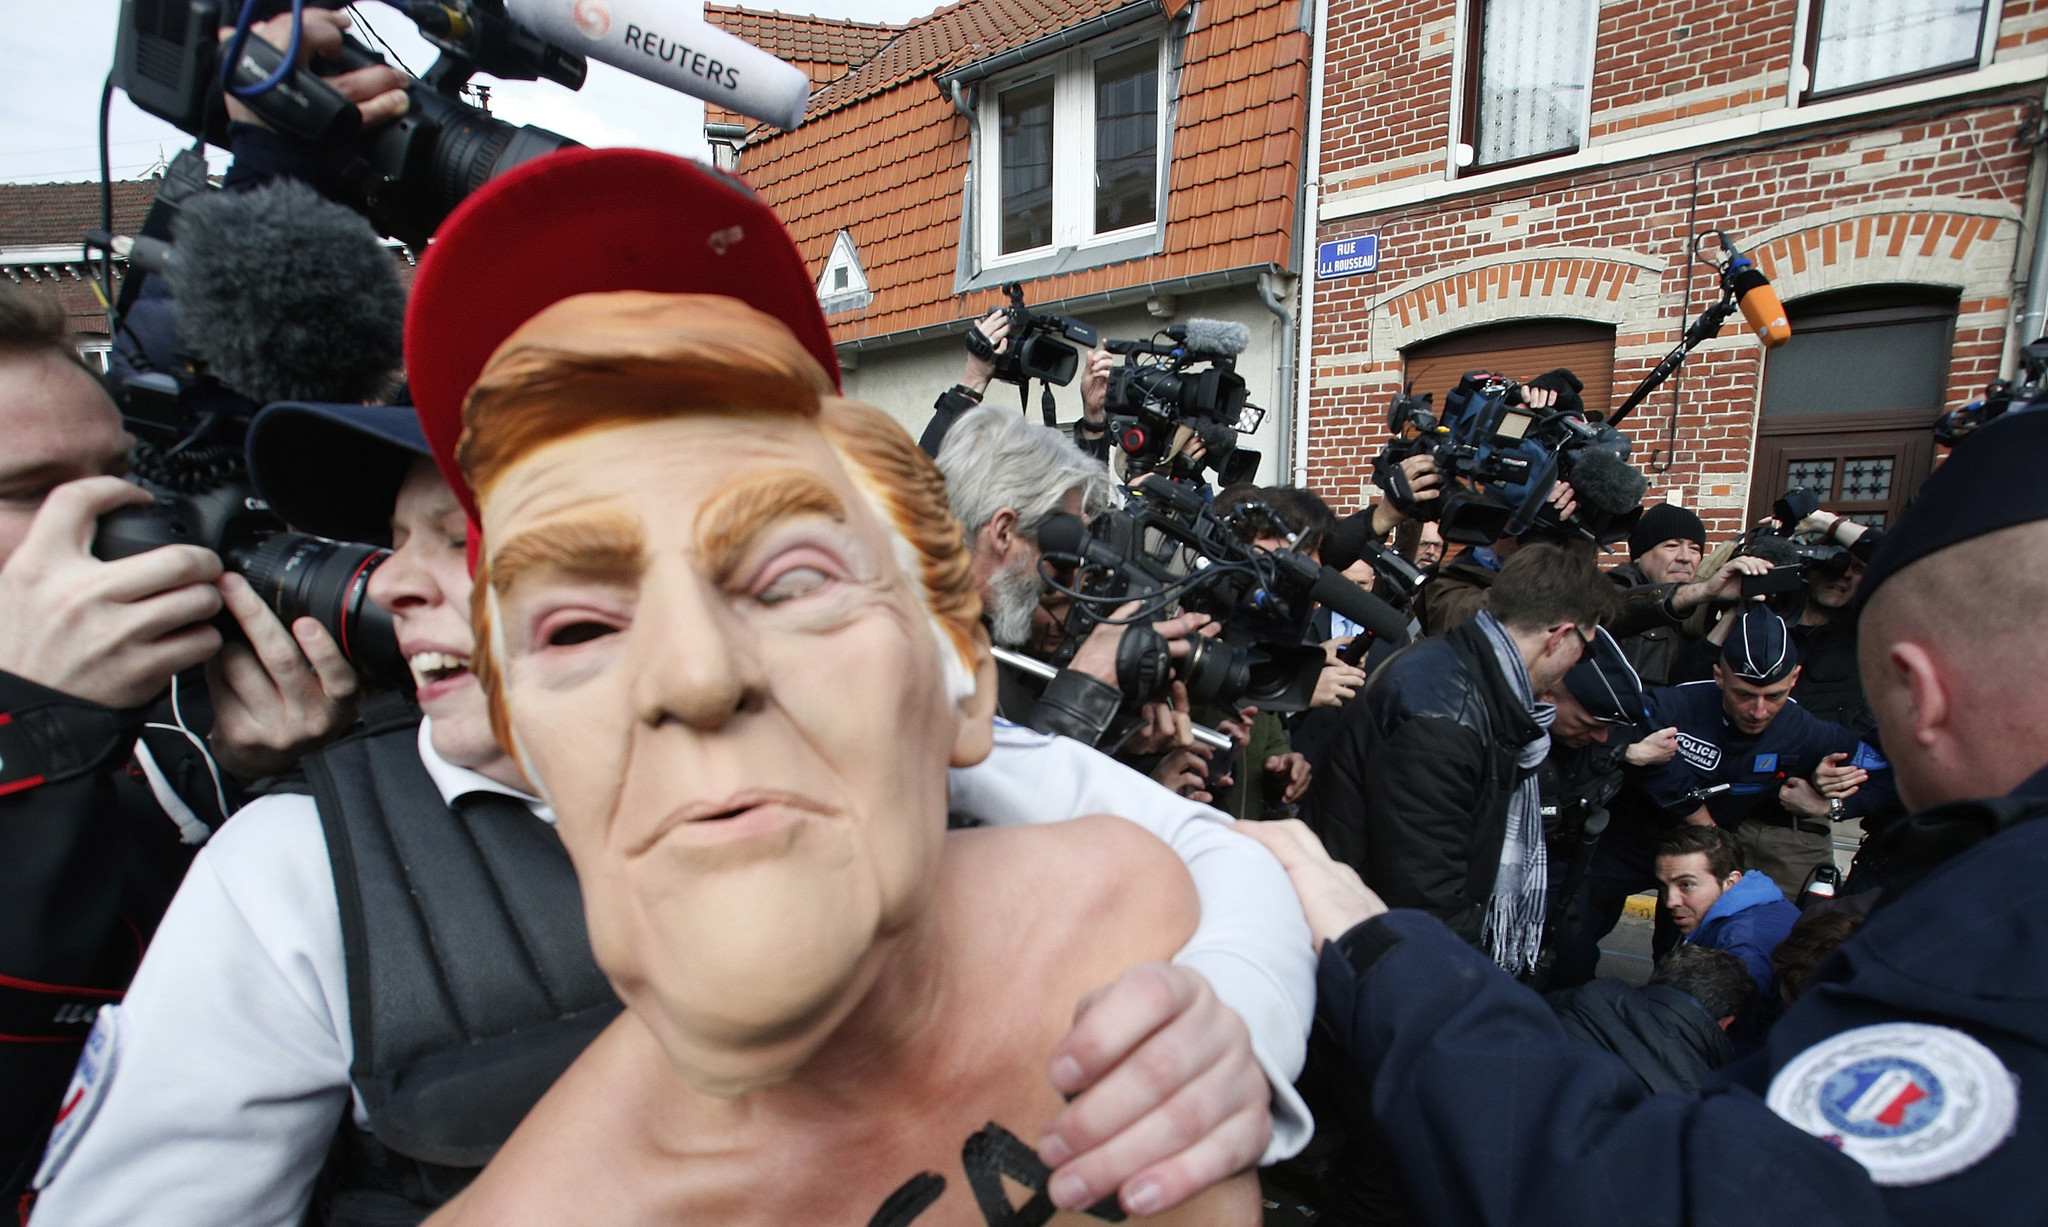 An activist is detained in Henin-Beaumont, France, where far-right candidate Marine Le Pen voted during the first round of the French presidential election on Sunday. (Michel Spingler / Associated Press)